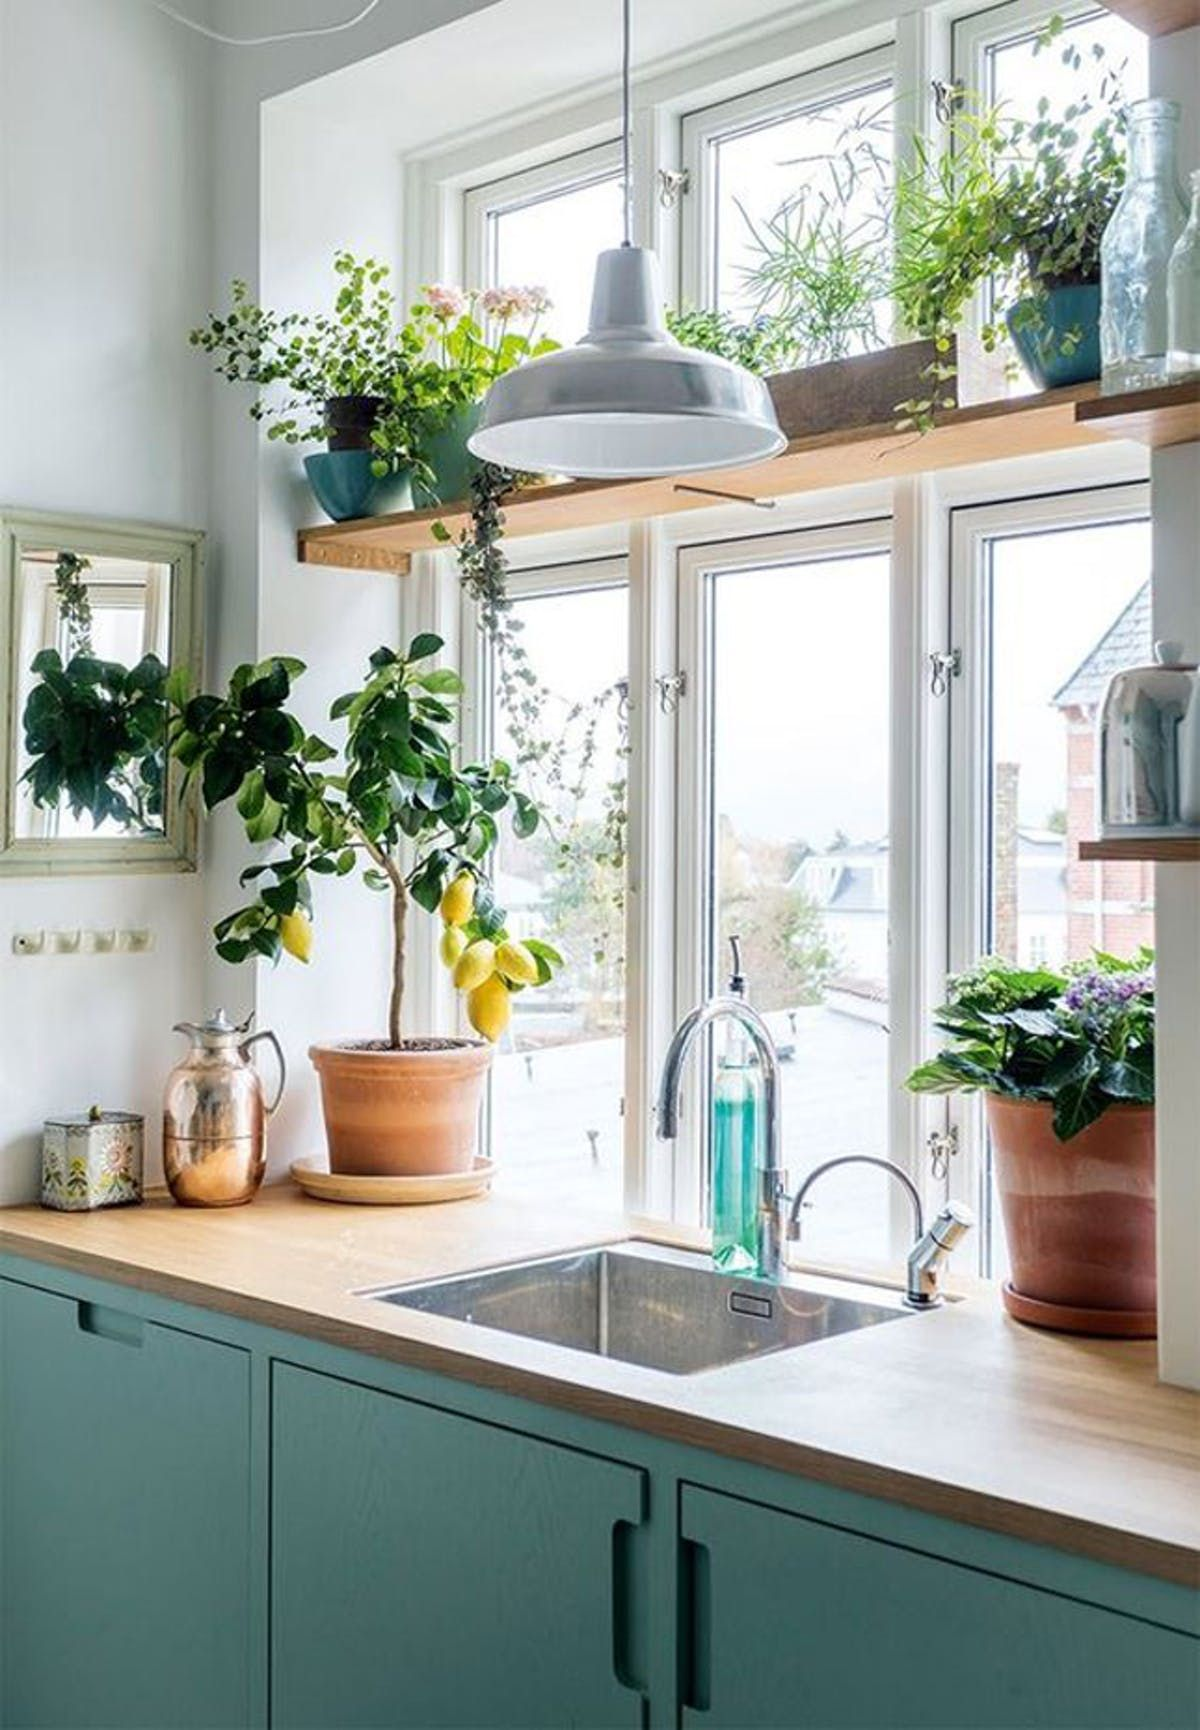 10 Genius Ways to Use That Awkward Space Above Your ...